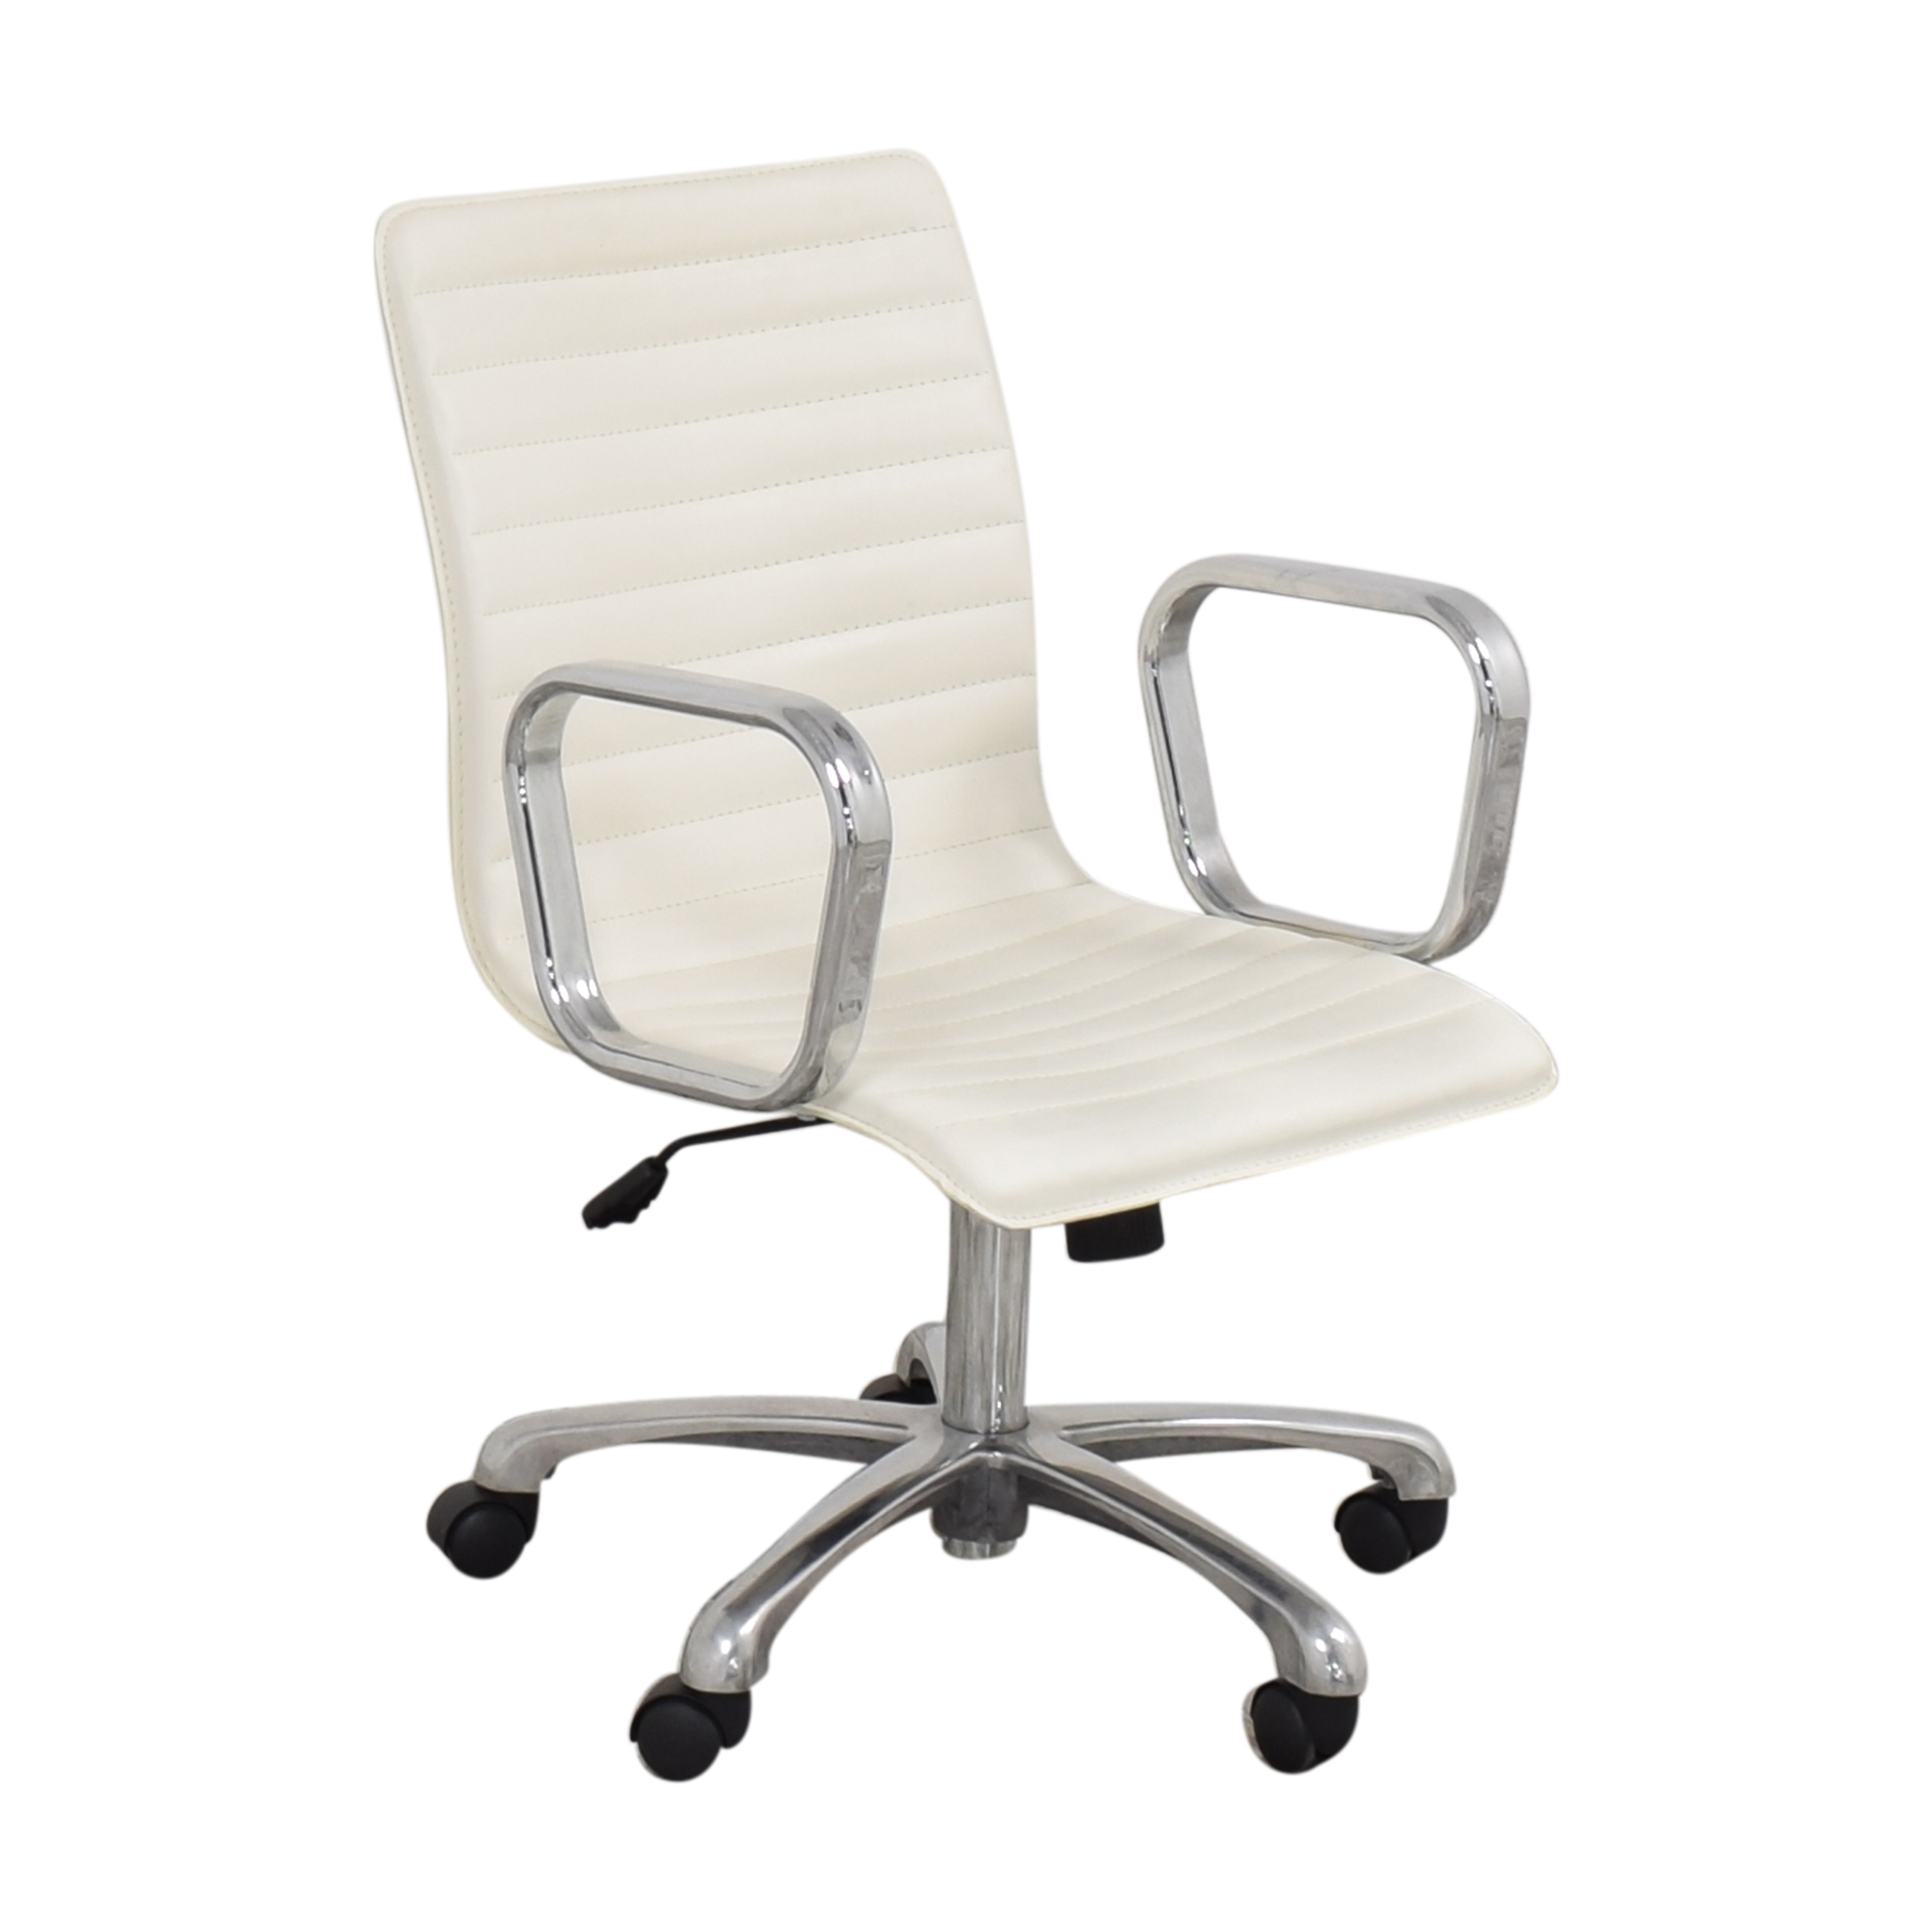 Crate & Barrel Crate & Barrel Ripple Ivory Office Chair with Chrome Base Chairs